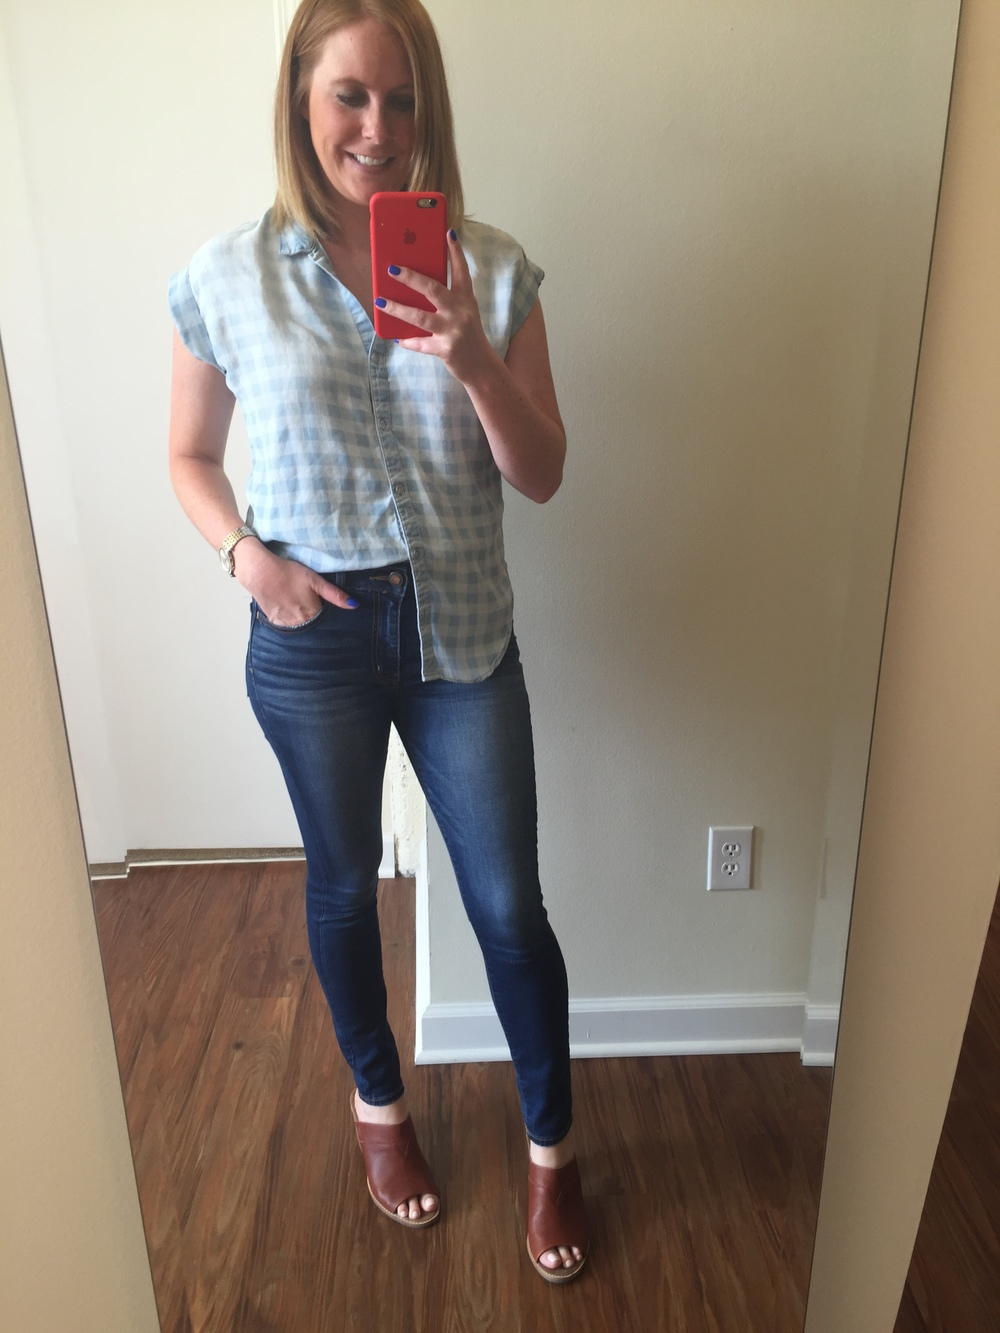 Top: Anthropologie, Cloth & Stone,  Celestine Button Down , Jeans: American Eagle,  Hi-Rise Jegging , Mules: Nordstrom, Toms,  Majorca Mule Sandal , Watch: Nordstrom, Michael Kors,  Darci Round Bracelet Watch, 39mm